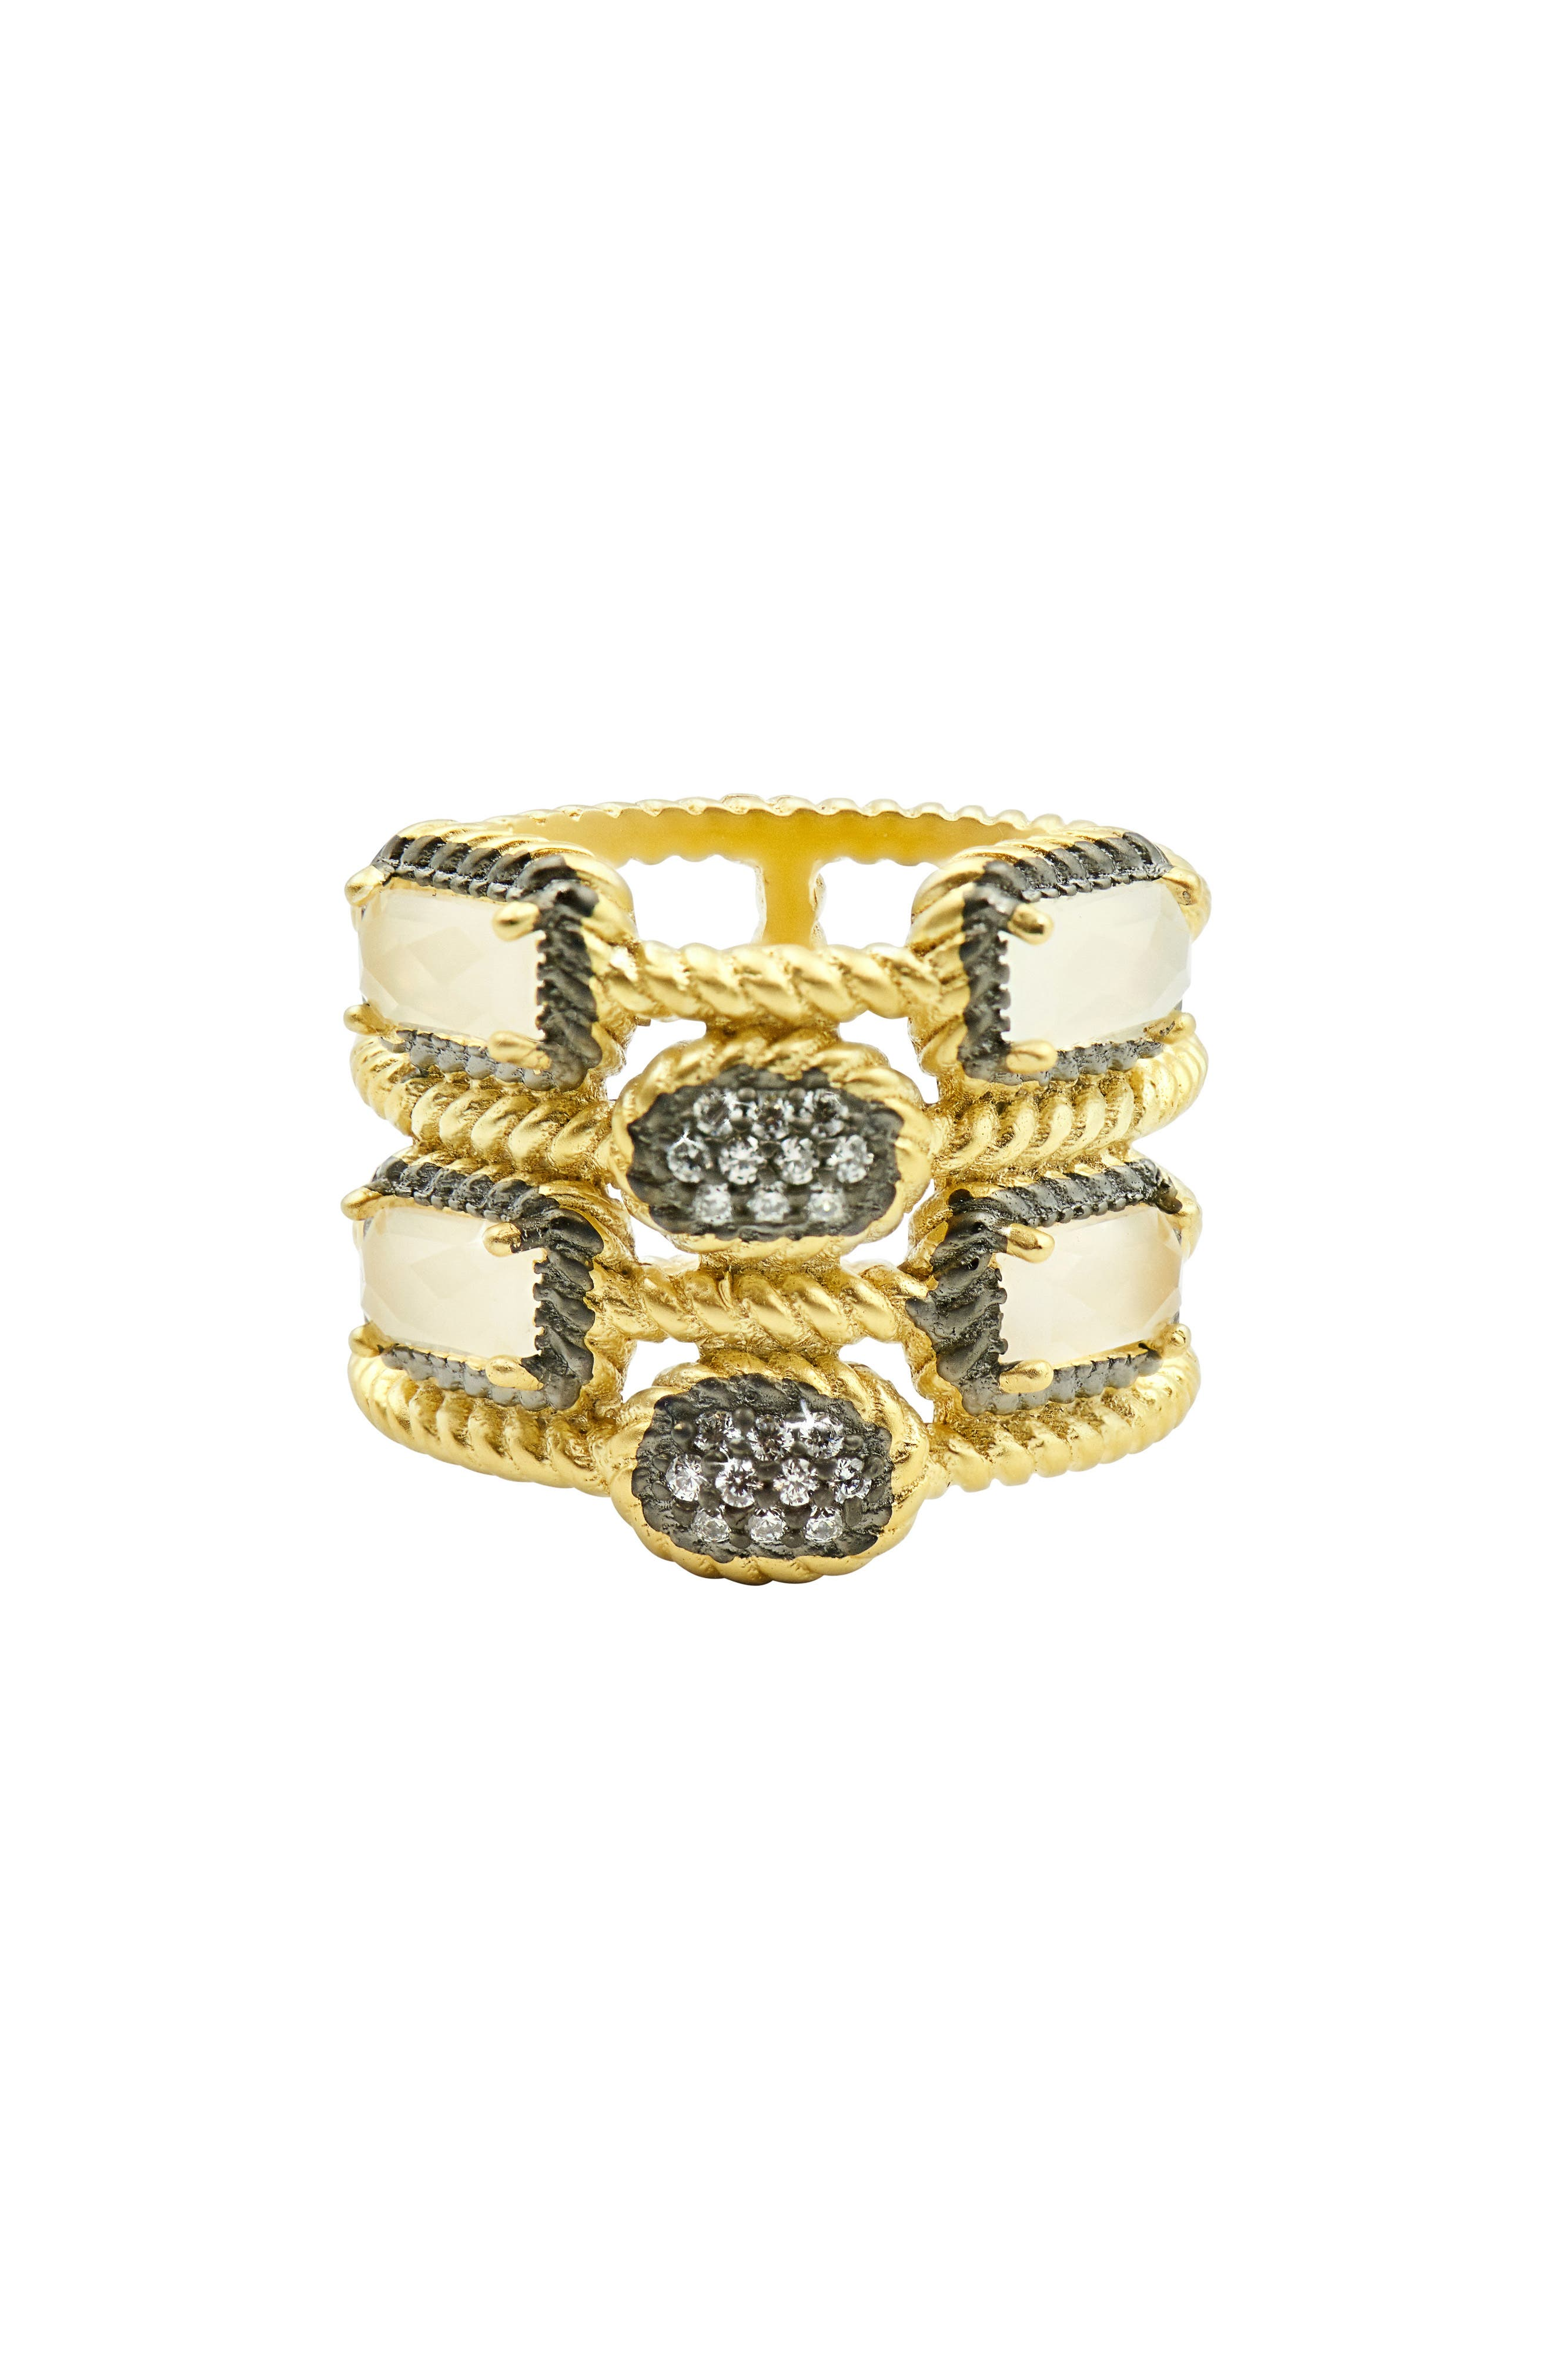 Main Image - FREIDA ROTHMAN Gilded Cable Stone & Pavé Cage Ring